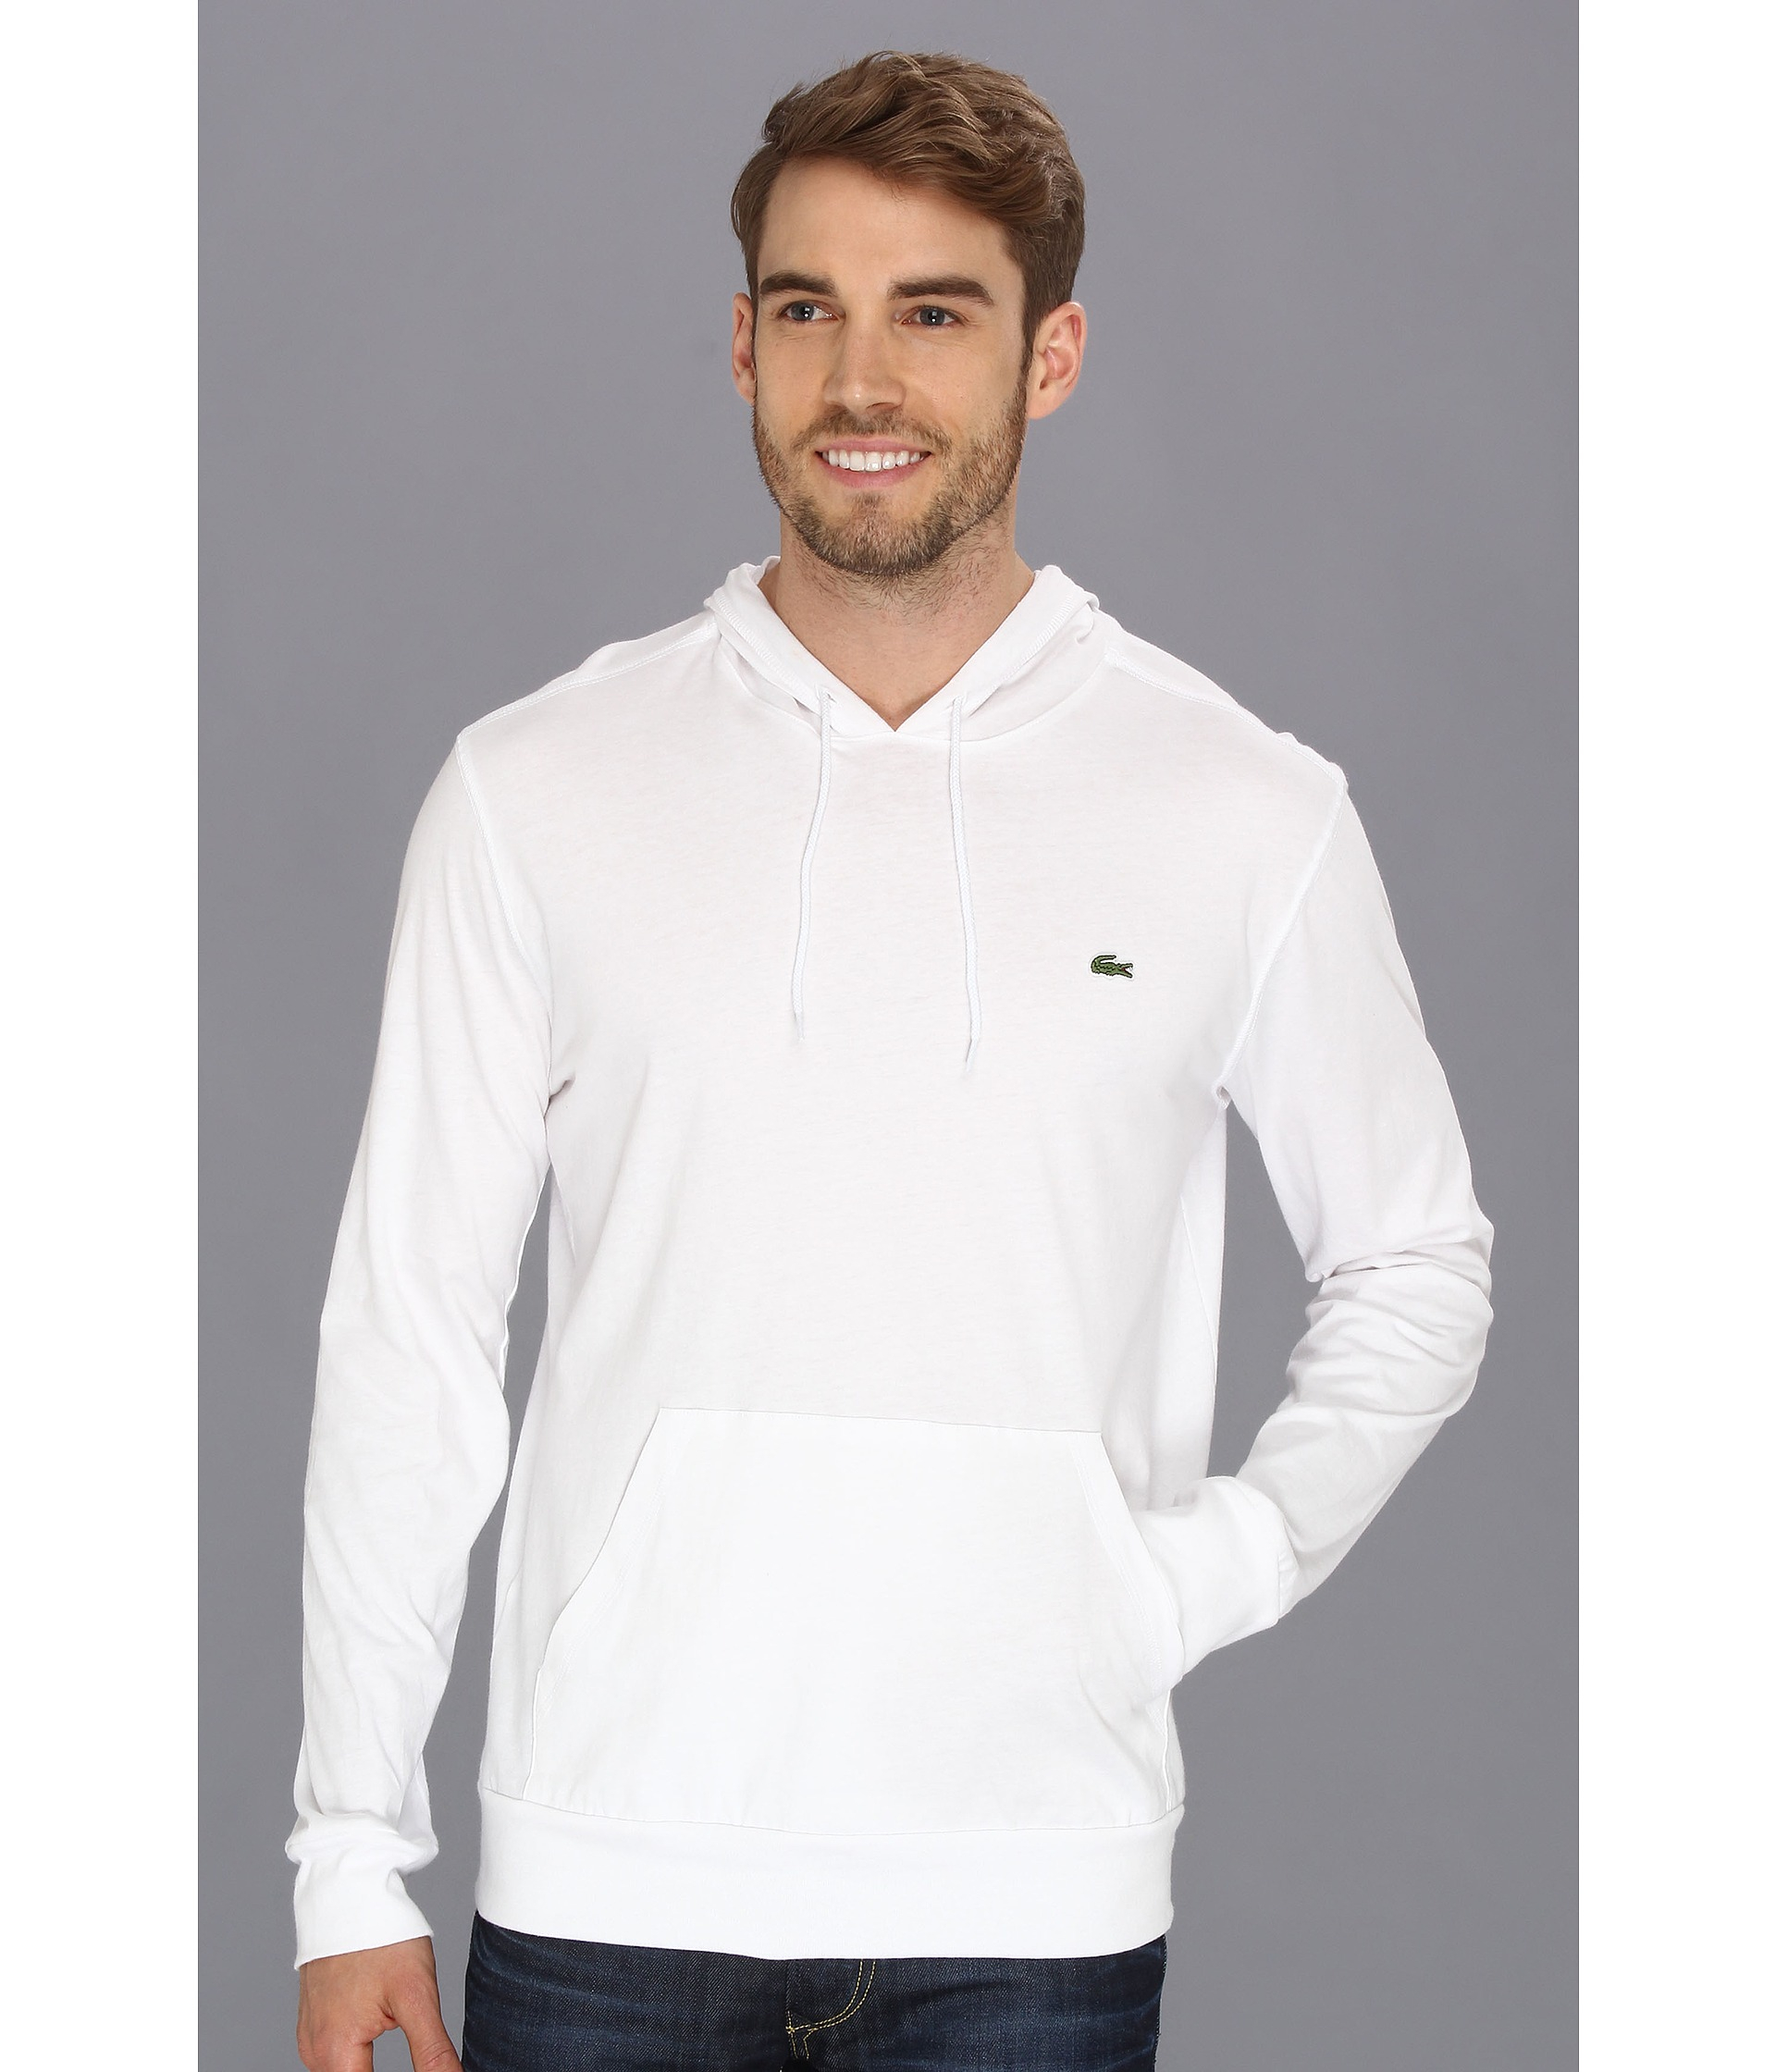 lacoste jersey tshirt hoodie in white for men lyst